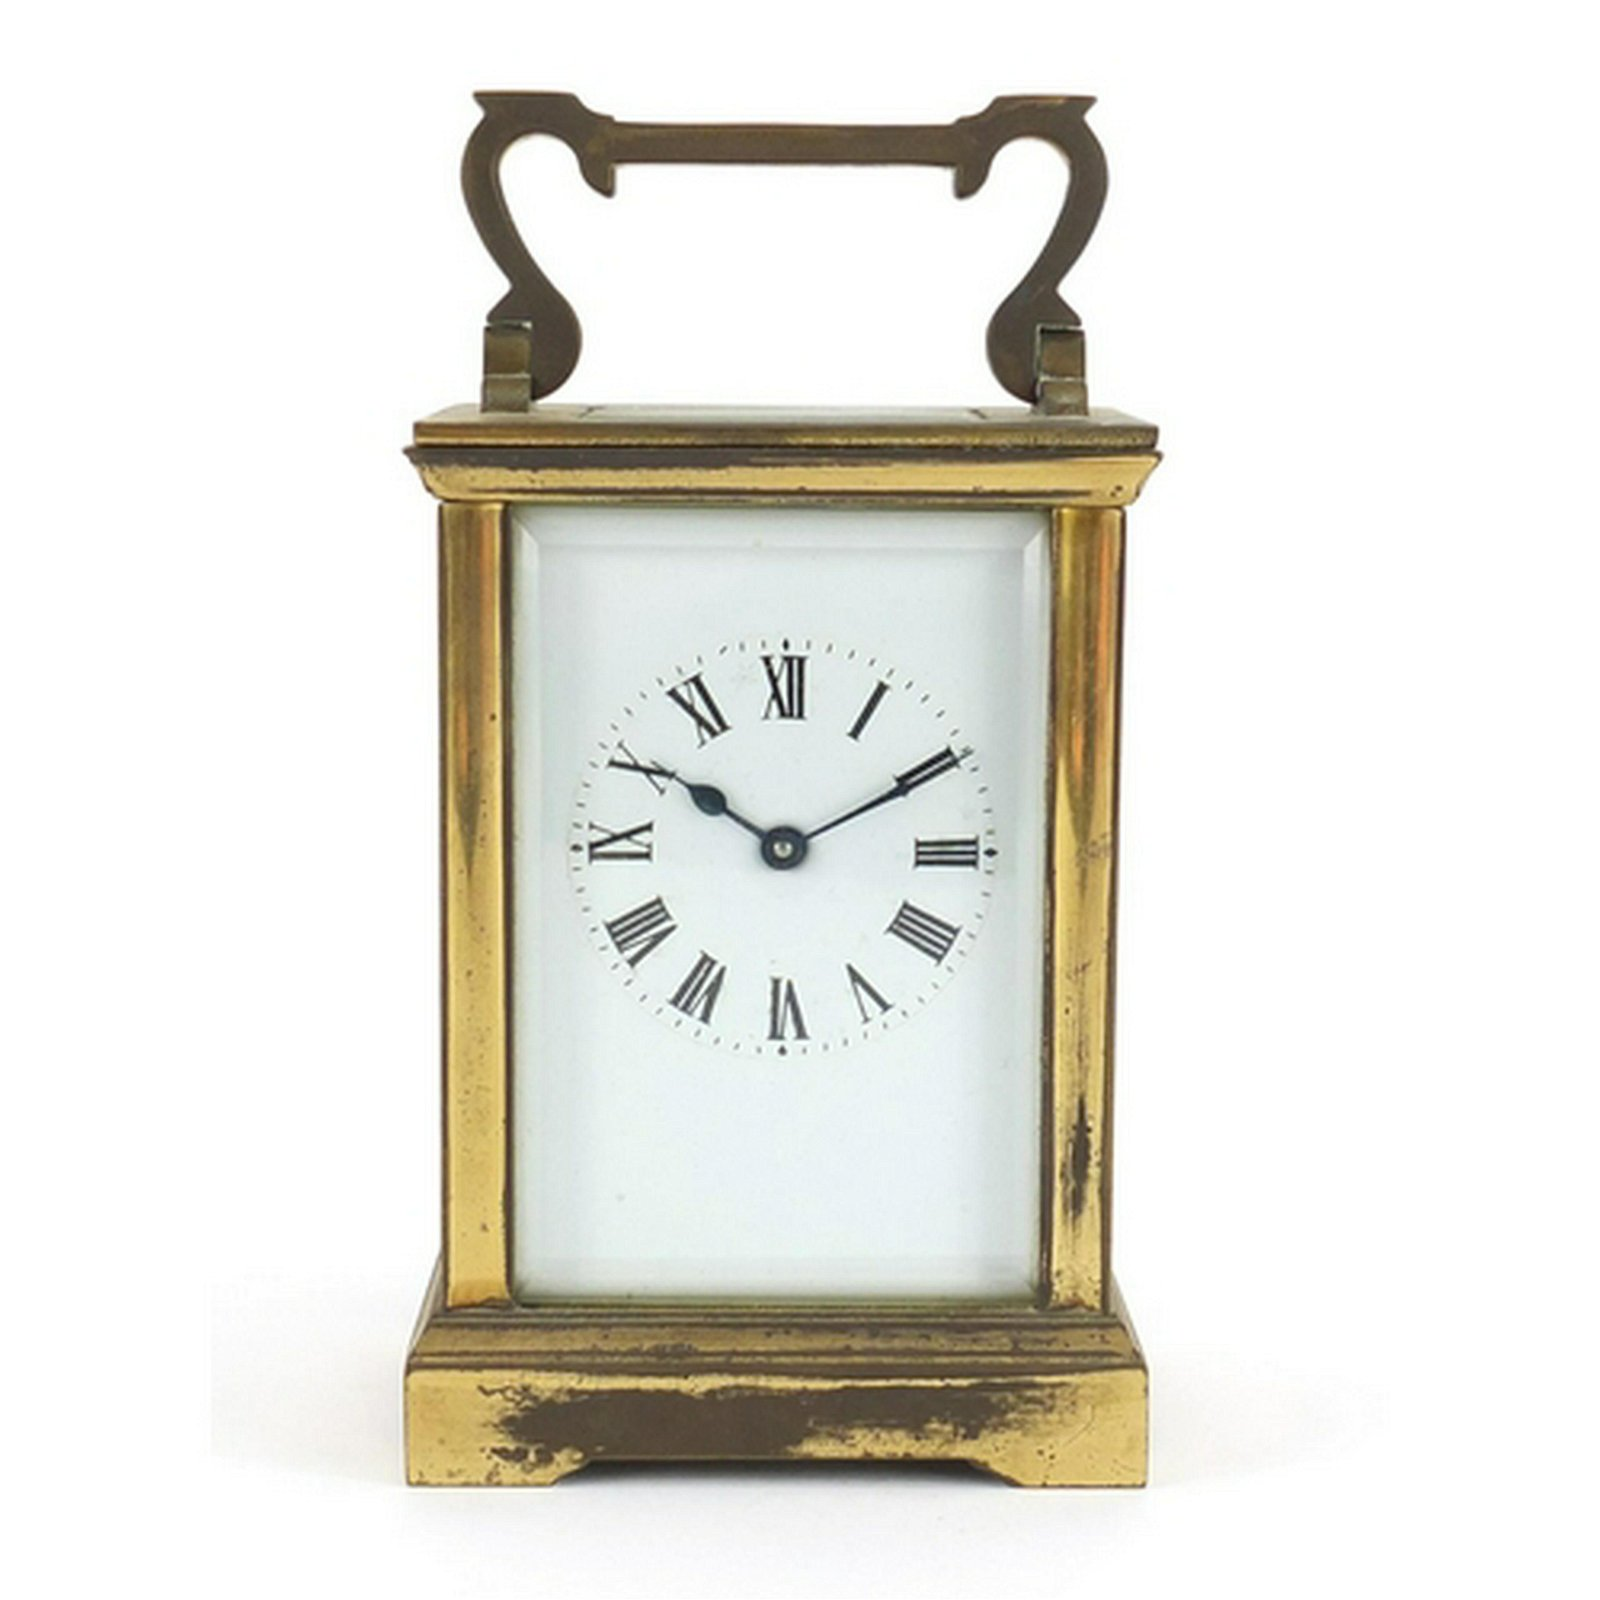 Brass cased carriage clock with enamelled dial and